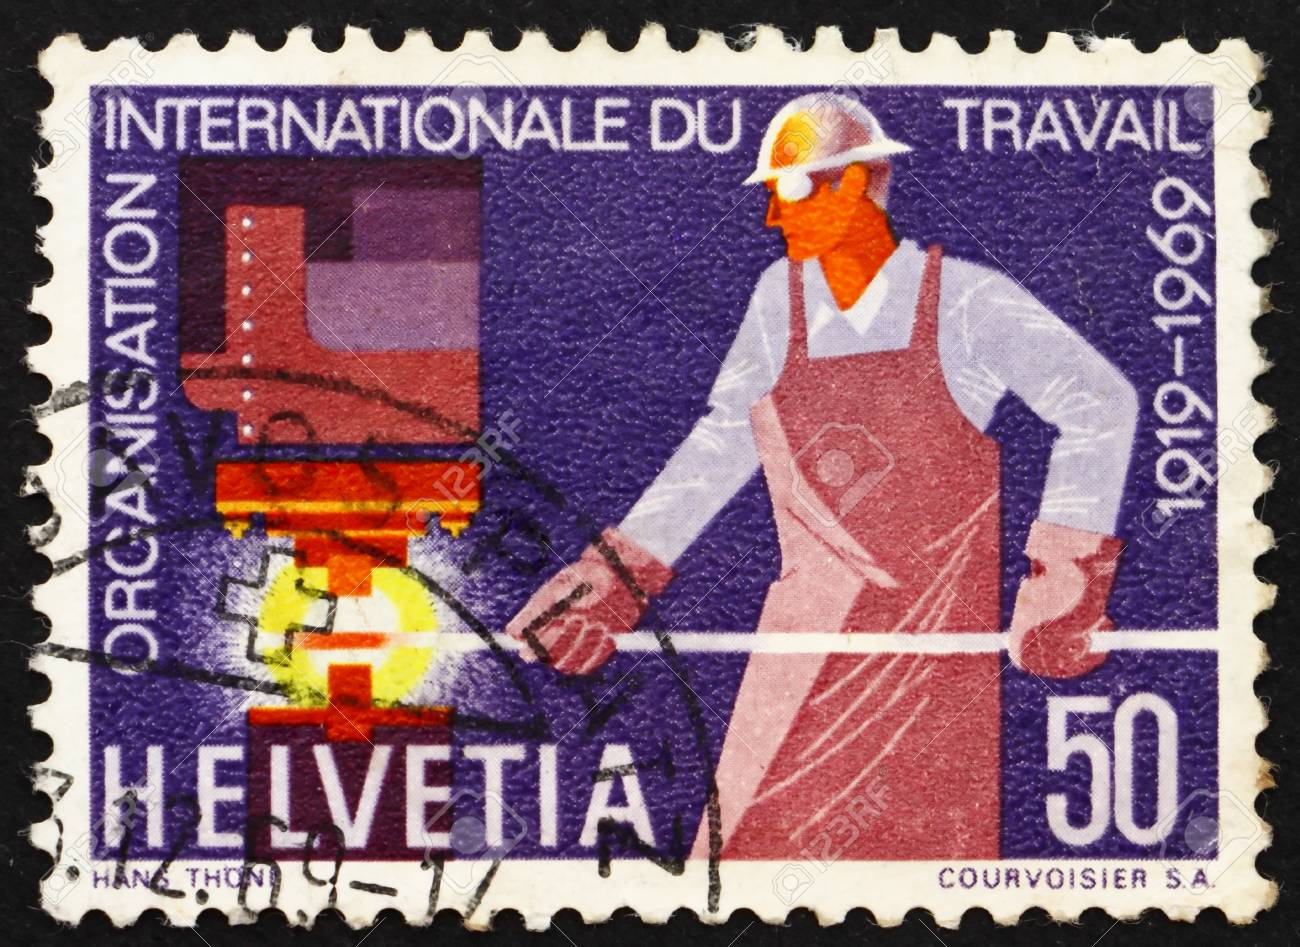 SWITZERLAND - CIRCA 1969: a stamp printed in the Switzerland shows Steelworker, 50th anniversary of the International Labor Organization, circa 1969 Stock Photo - 13685503